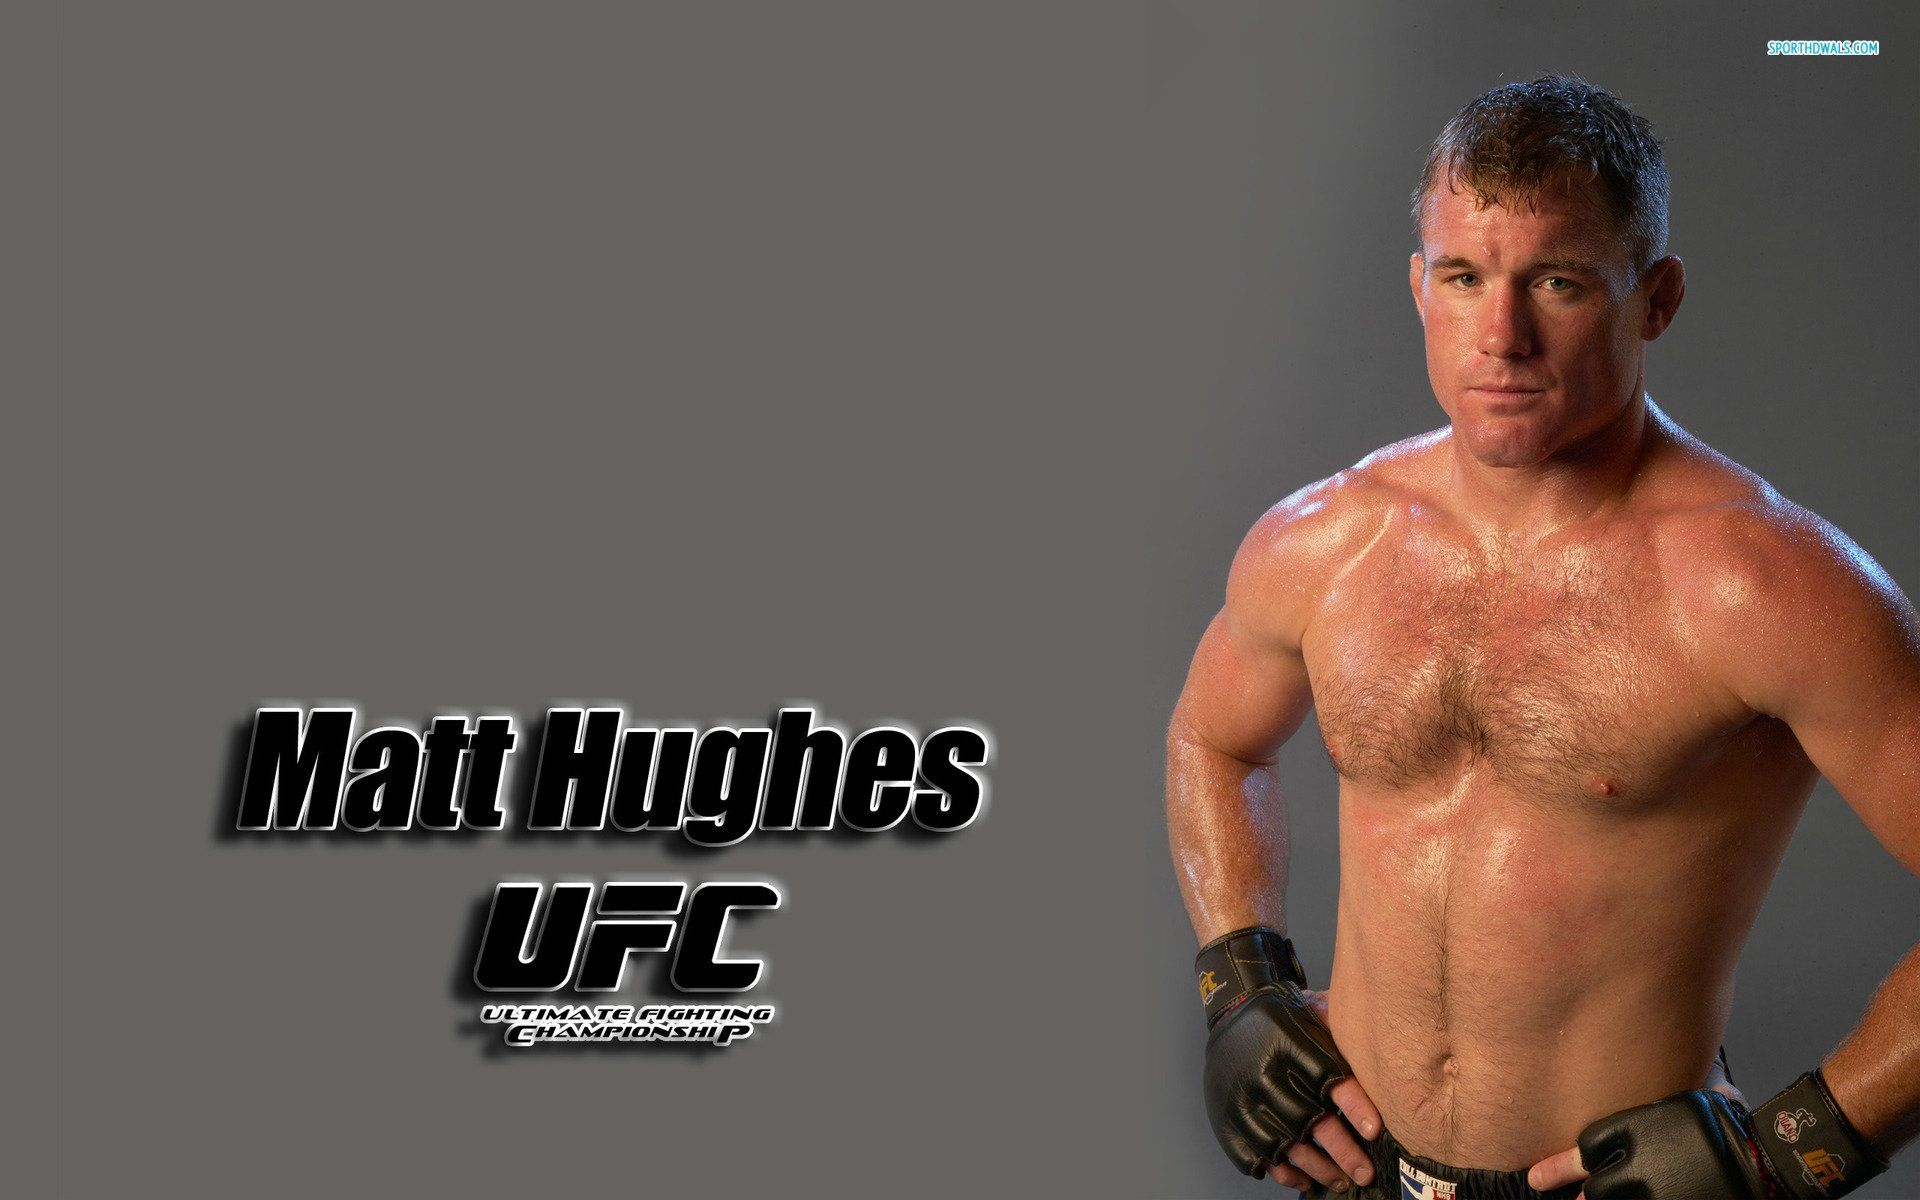 Matt Hughes - WallDevil